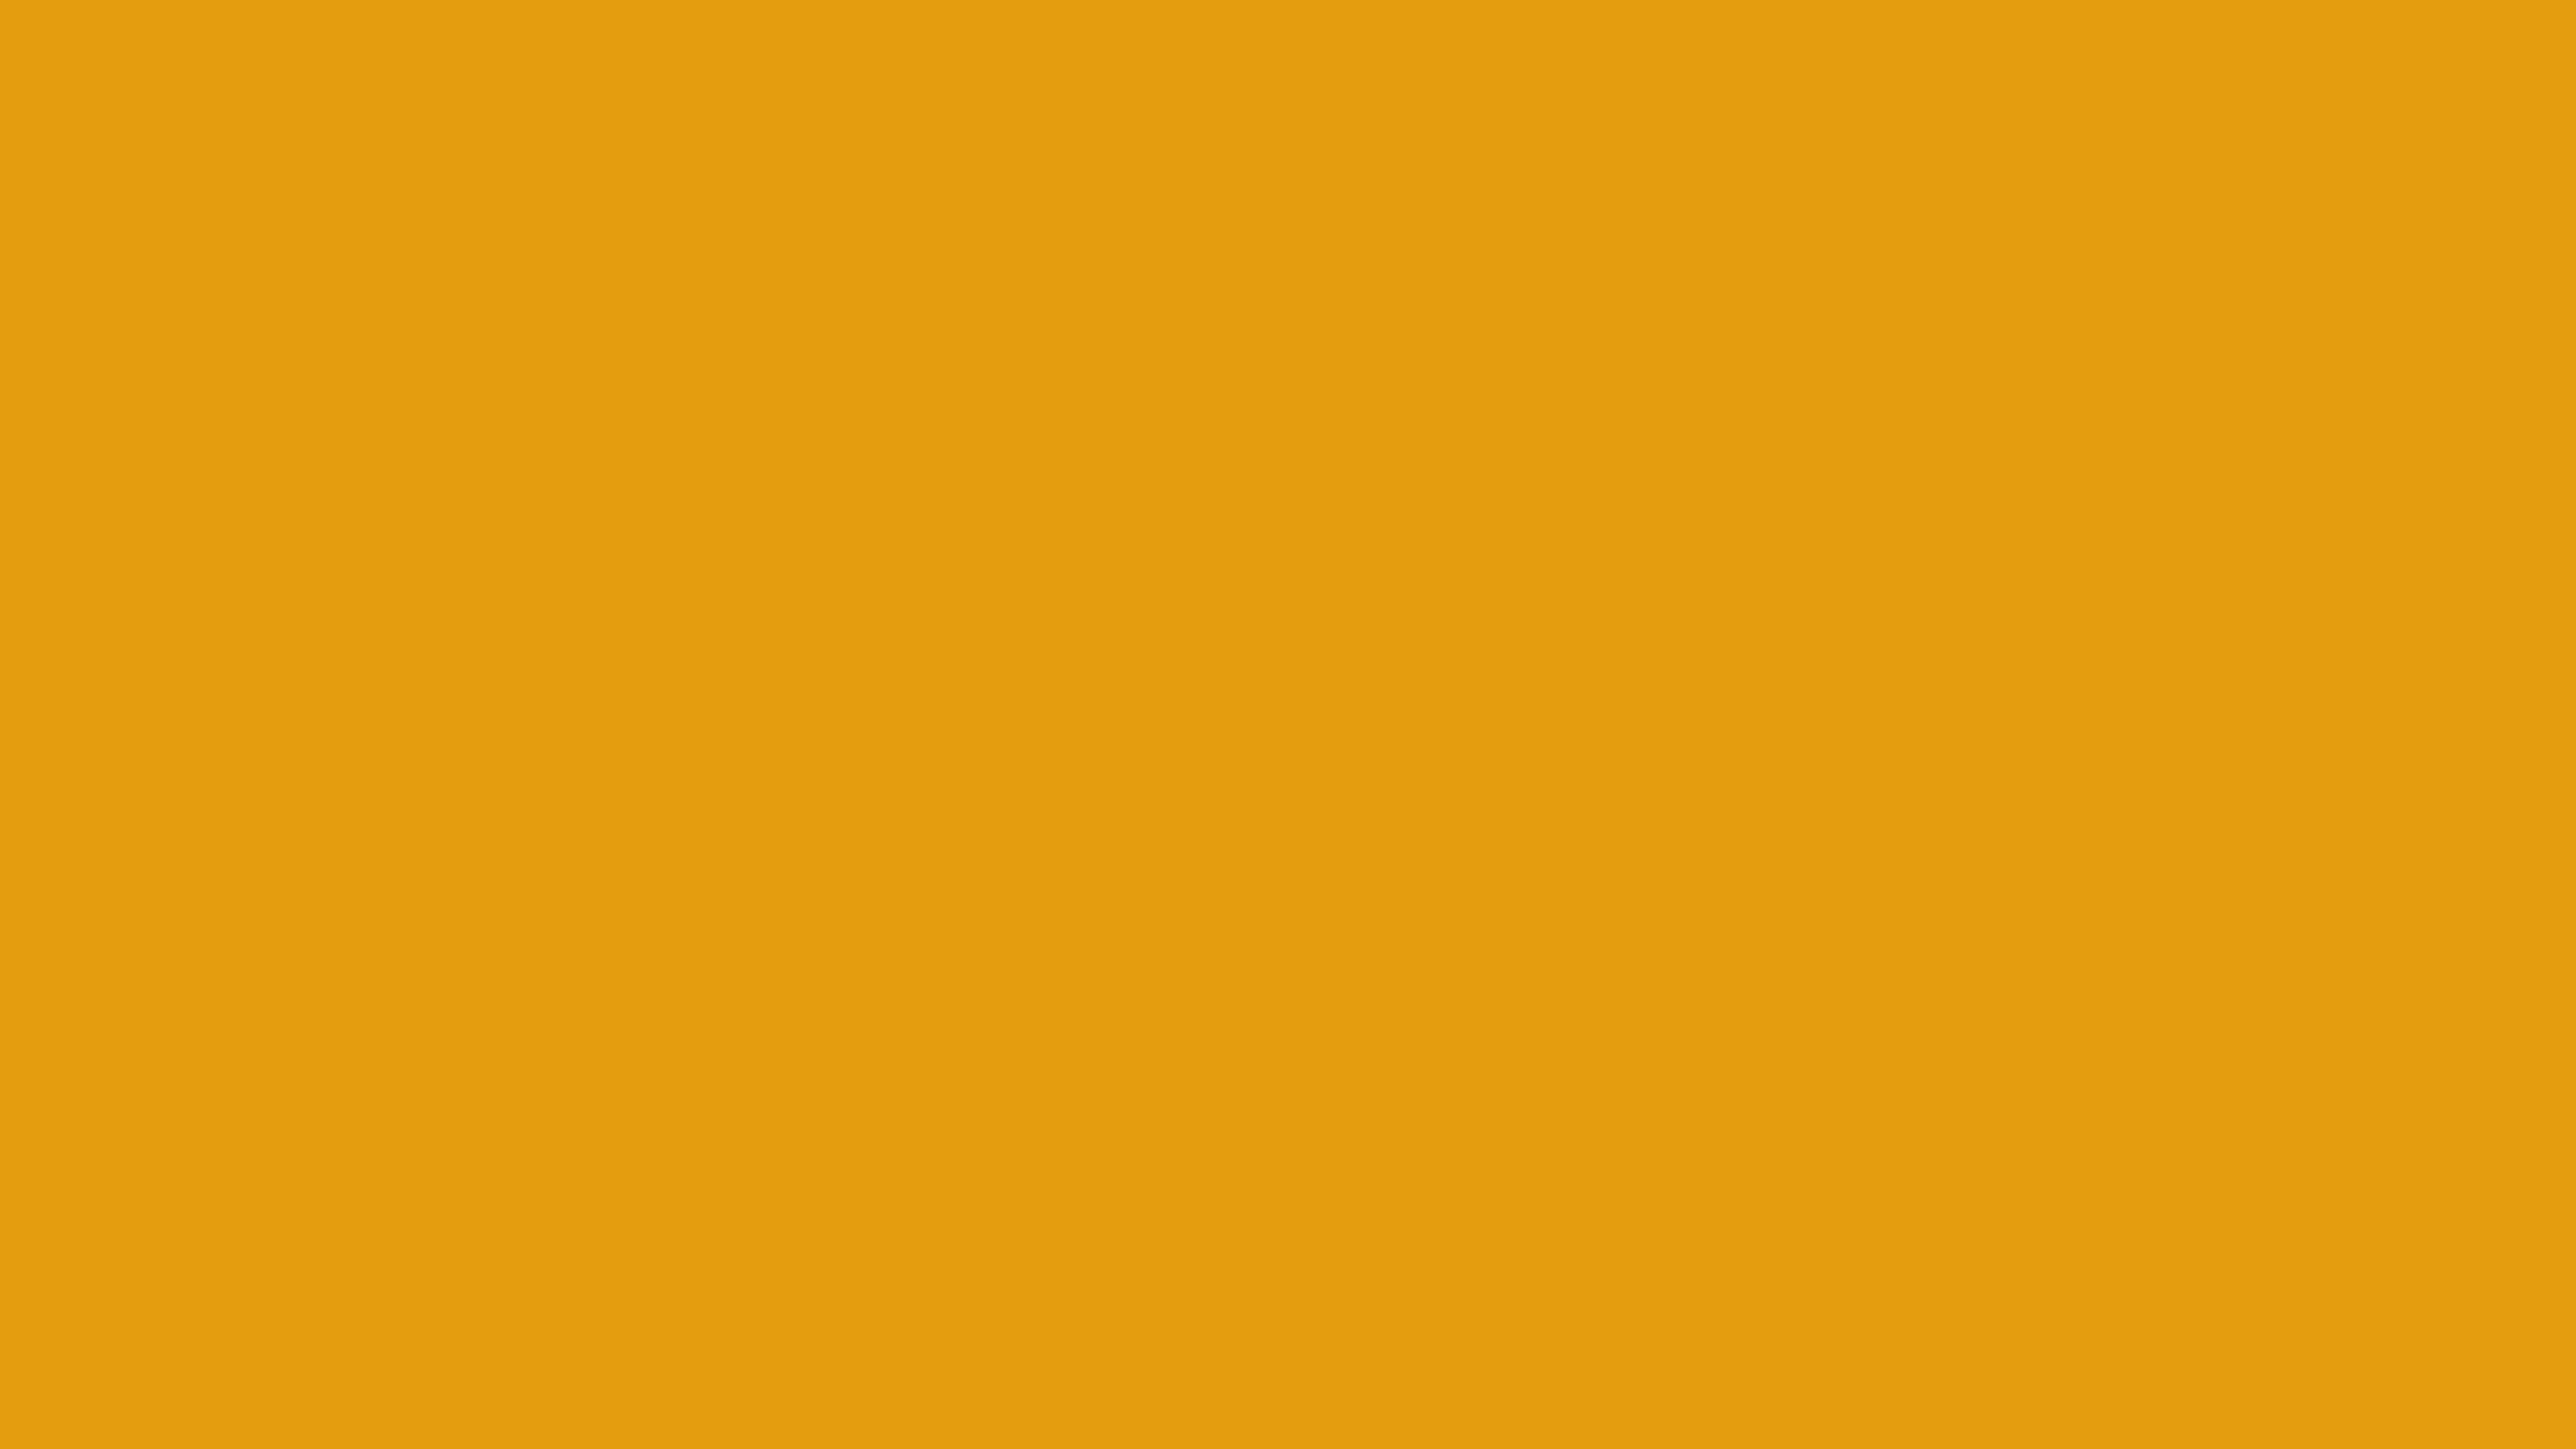 7680x4320 Gamboge Solid Color Background